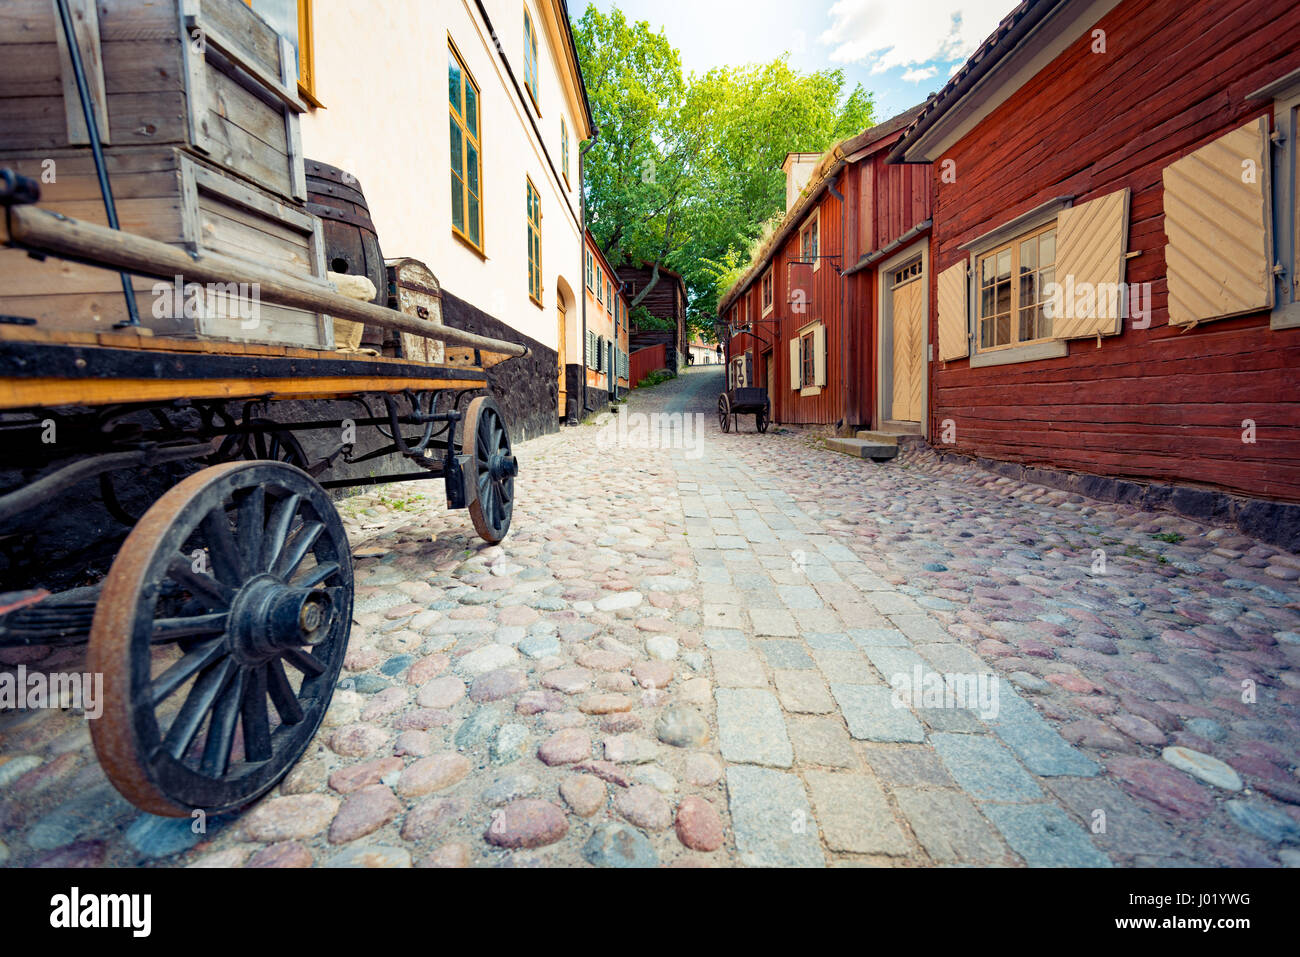 Skansen open-air museum and zoo in Sweden located on the island Djurgården in Stockholm. Old swedish traditional - Stock Image